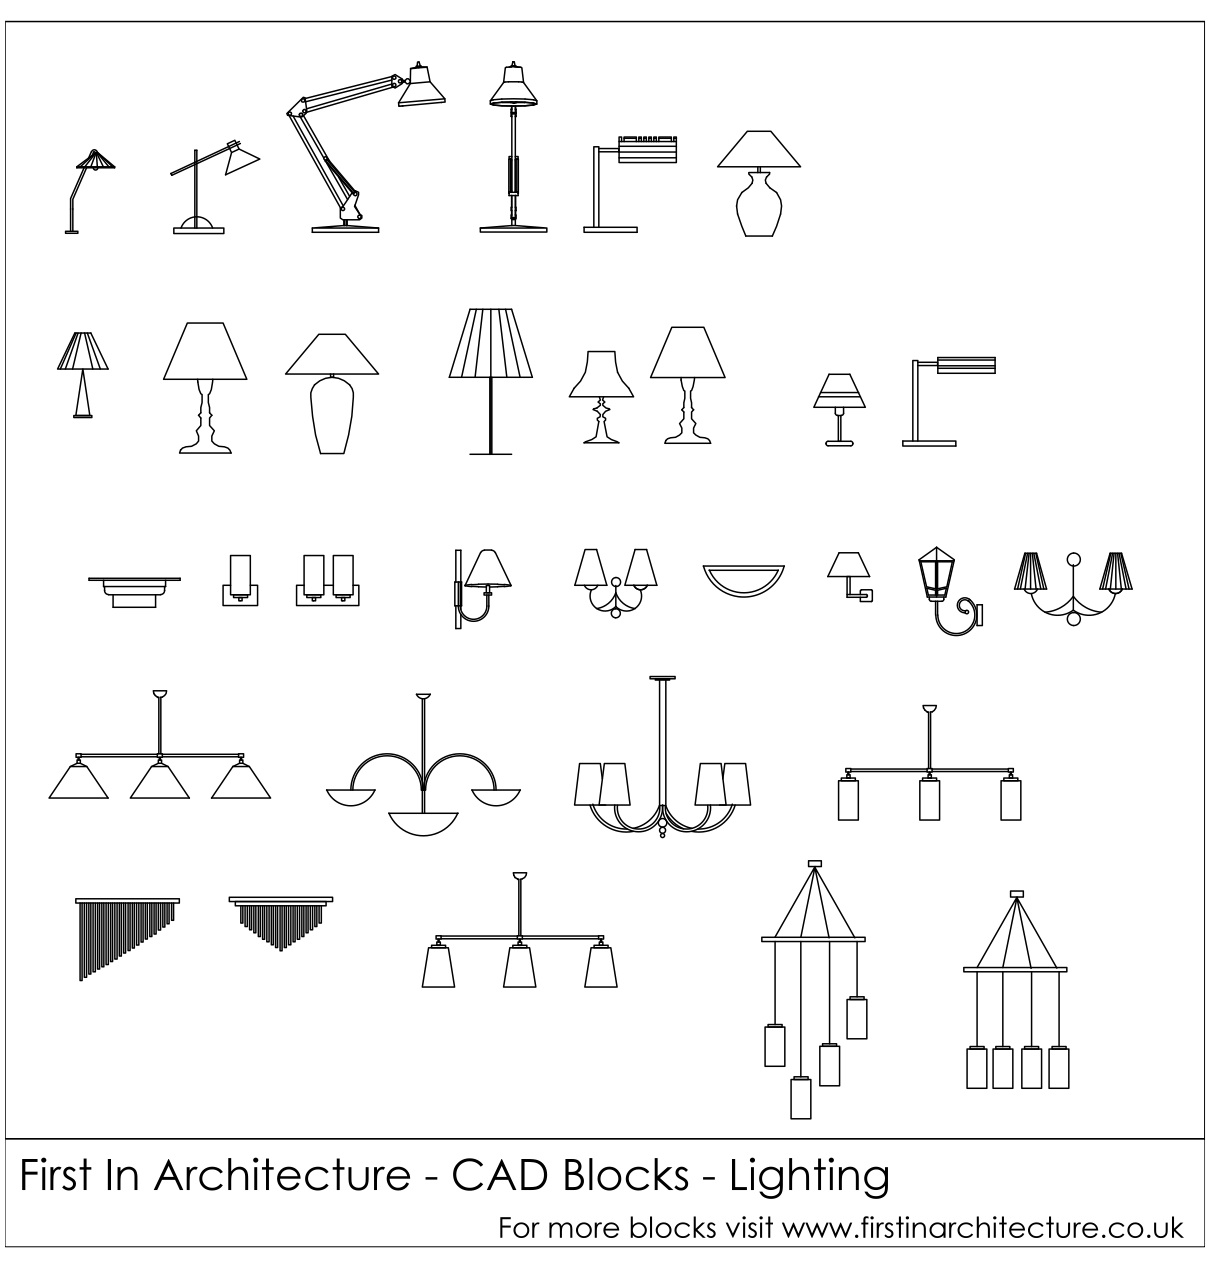 FIA CAD Blocks Lighting  sc 1 st  First In Architecture & Free CAD Blocks - Lighting